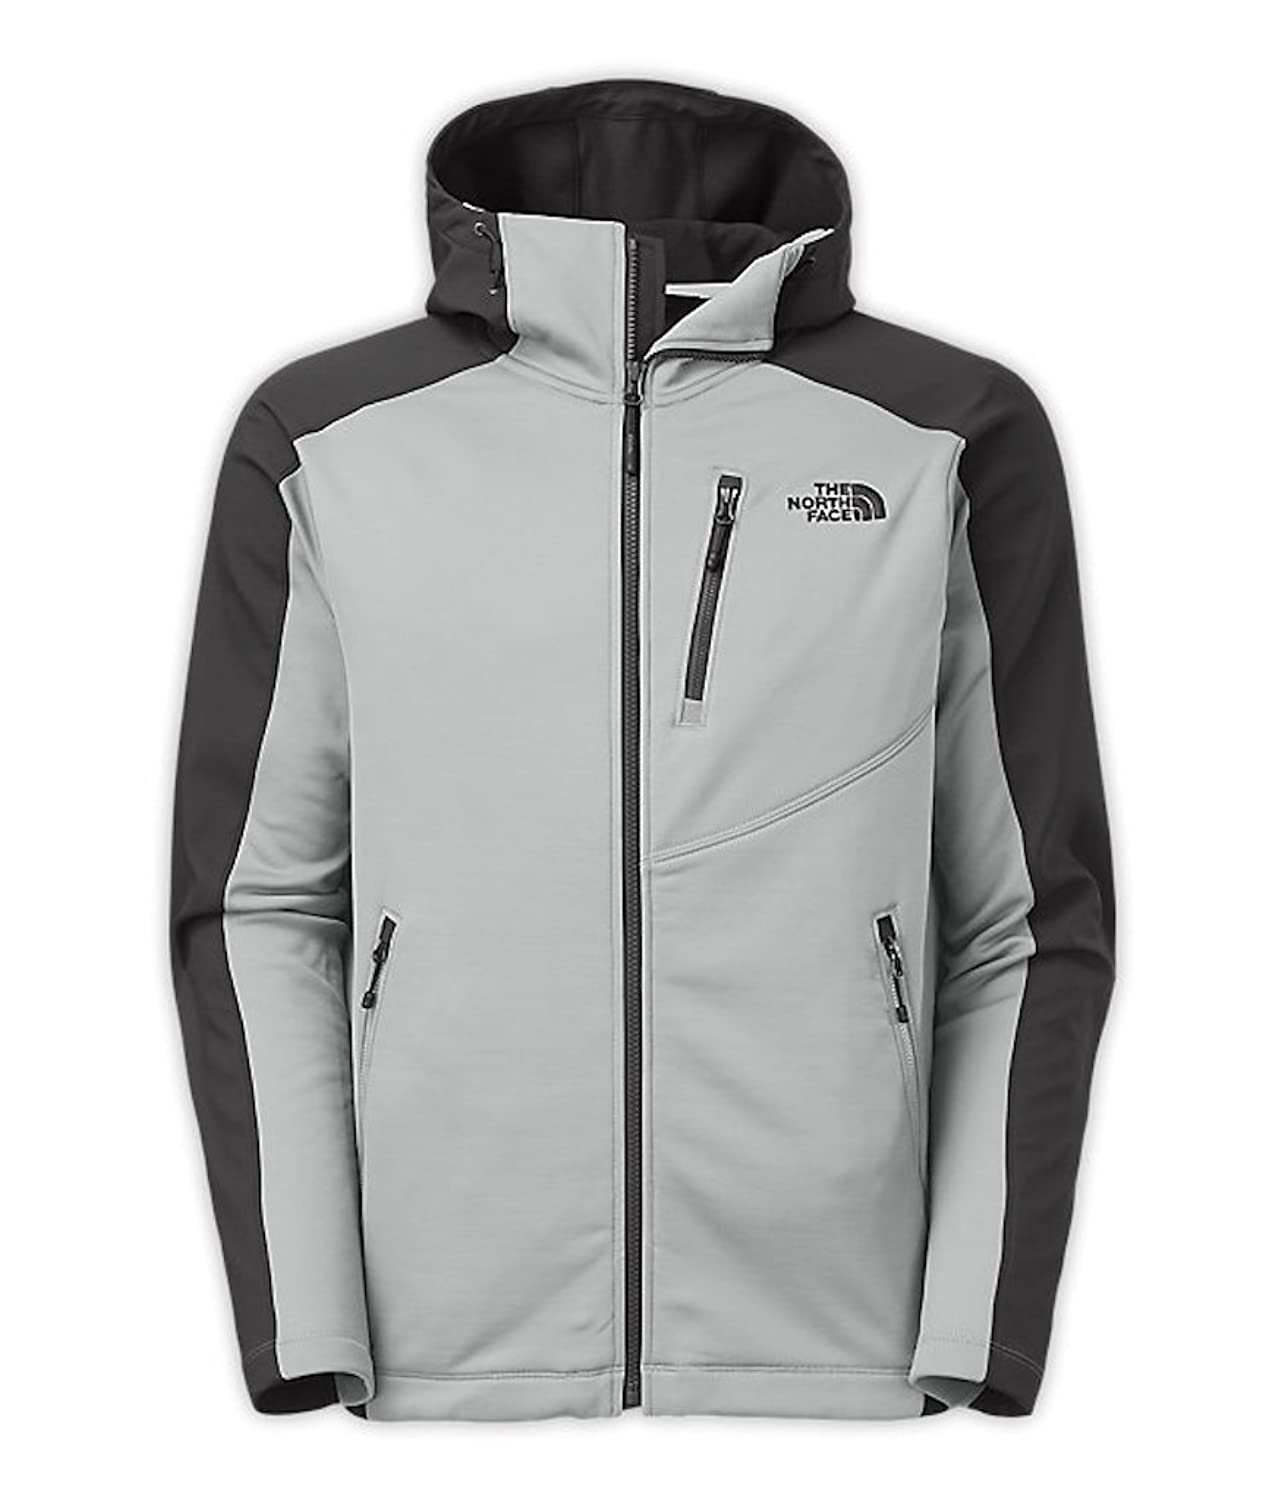 The North Face® Store at 1247 Ste Catherine West, Montreal ...